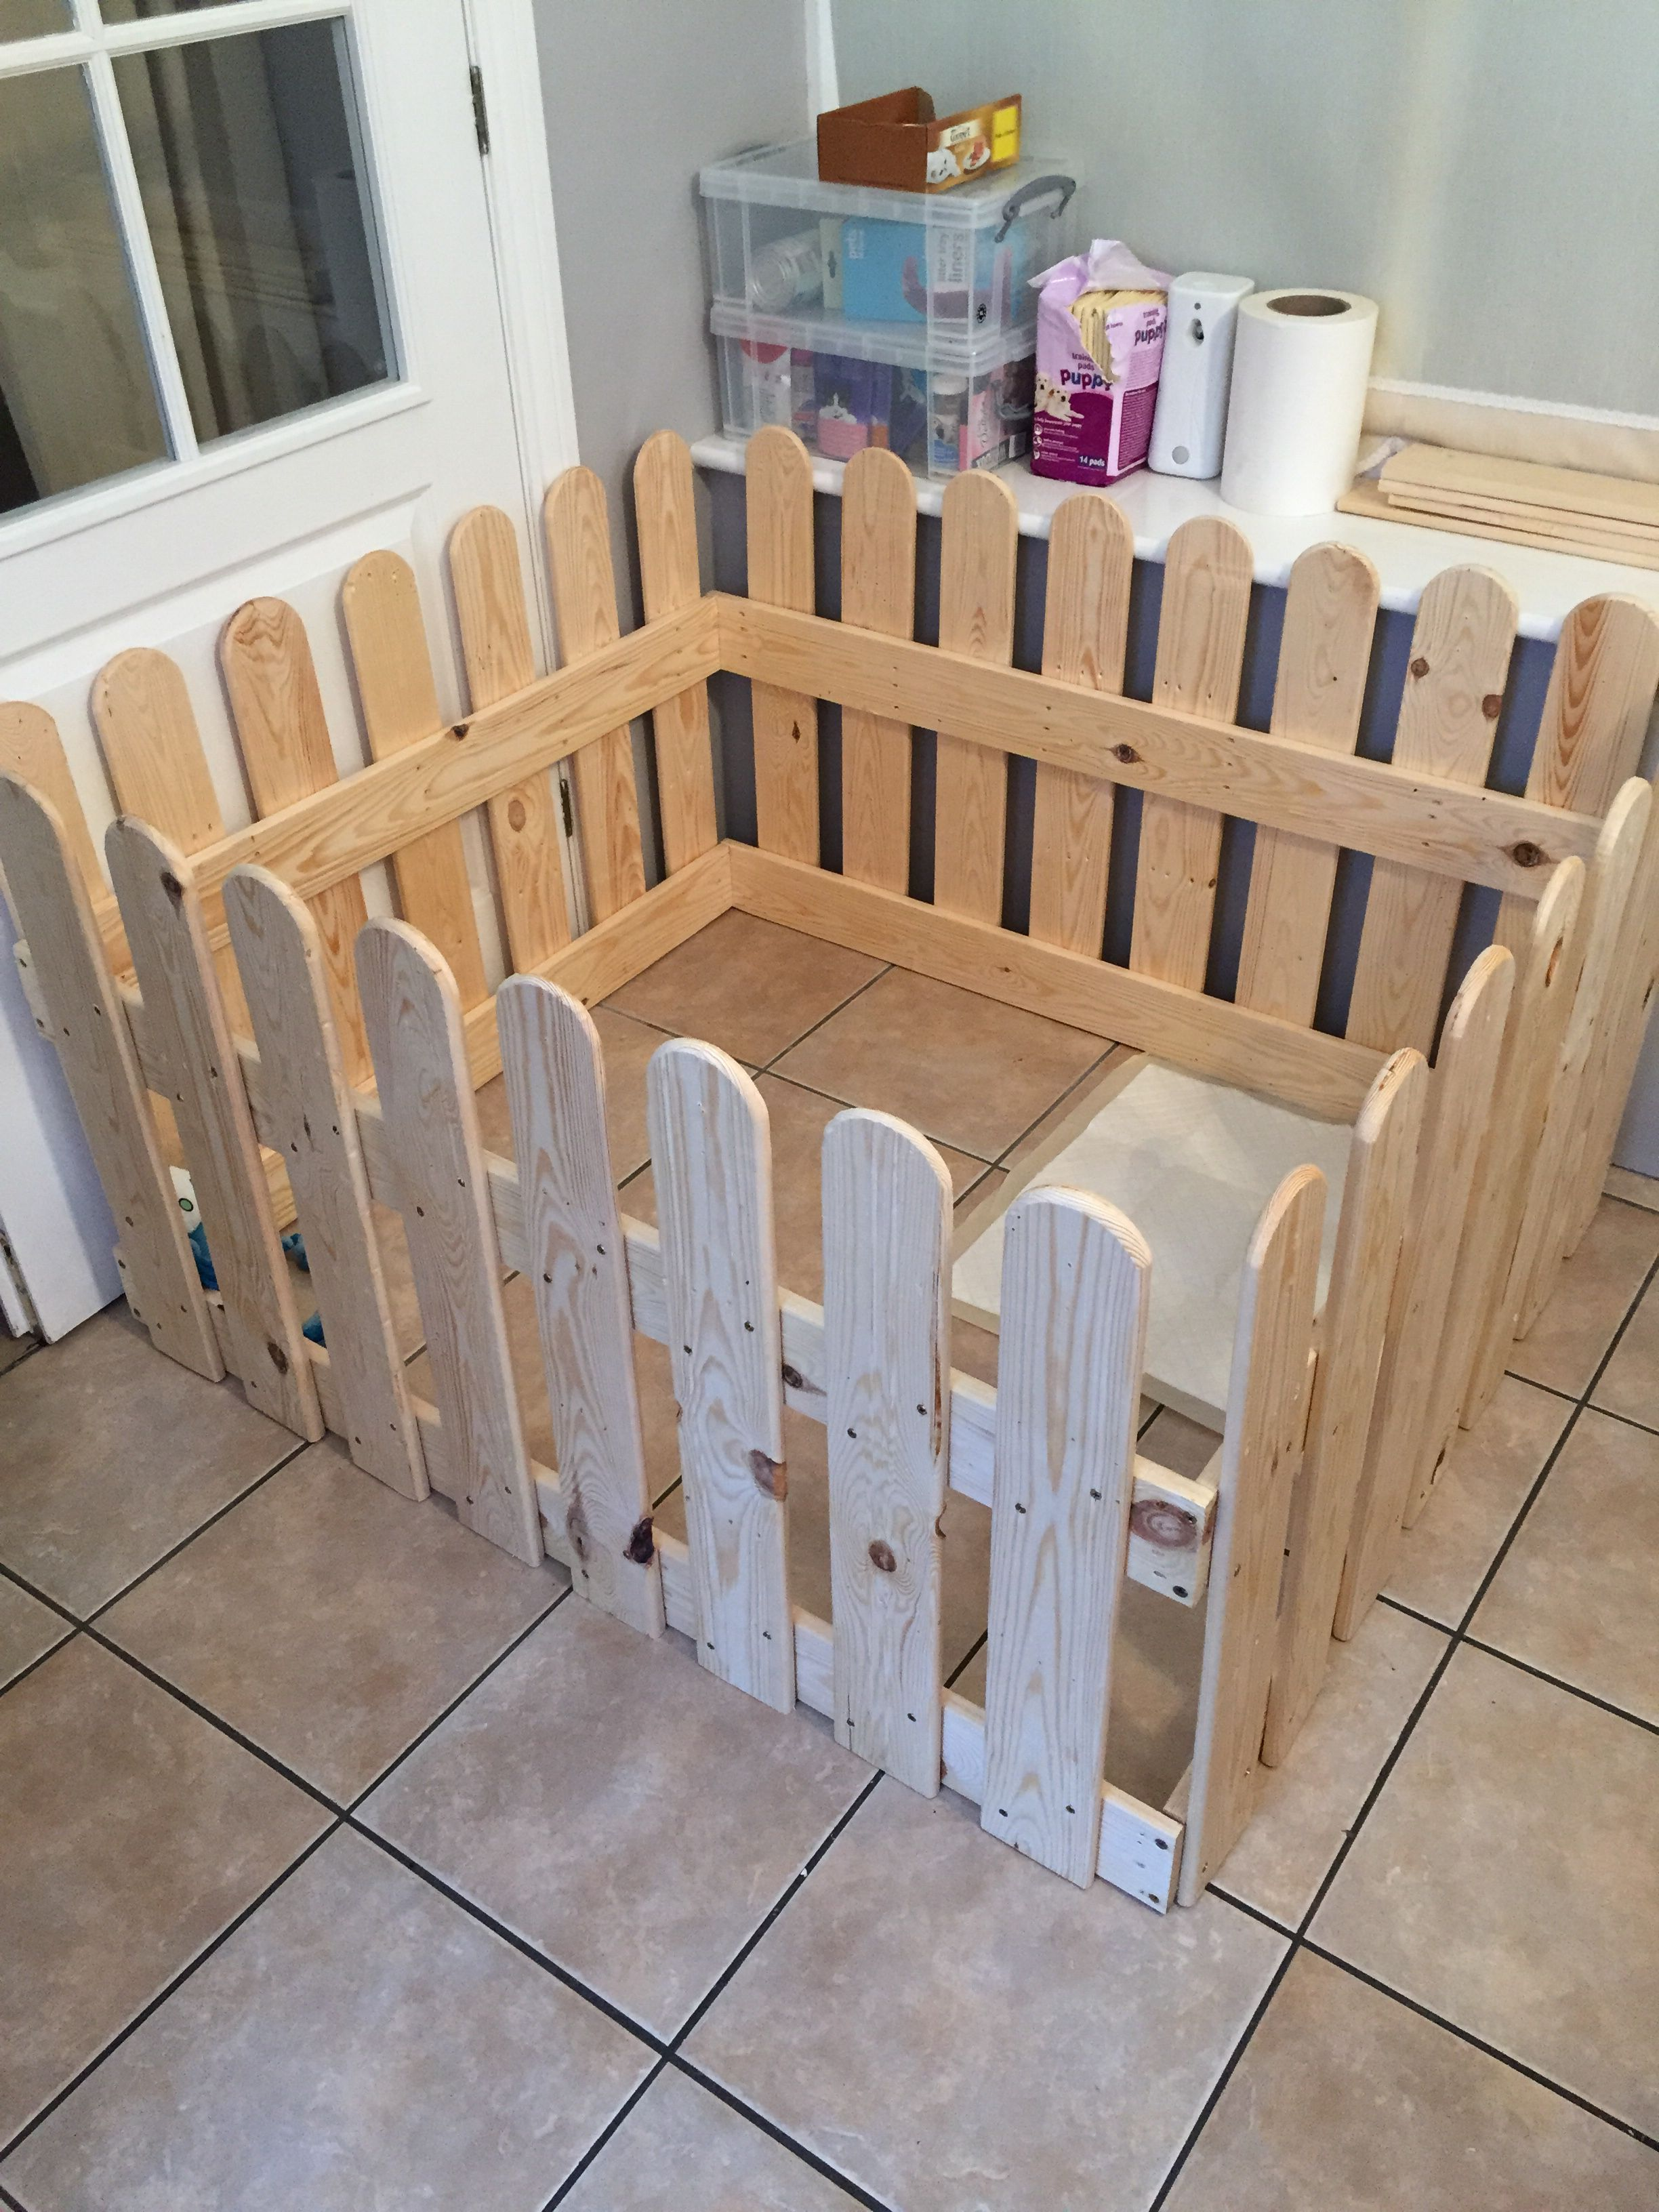 Wooden Puppy Dog Pen Made From Old Pallets Projects